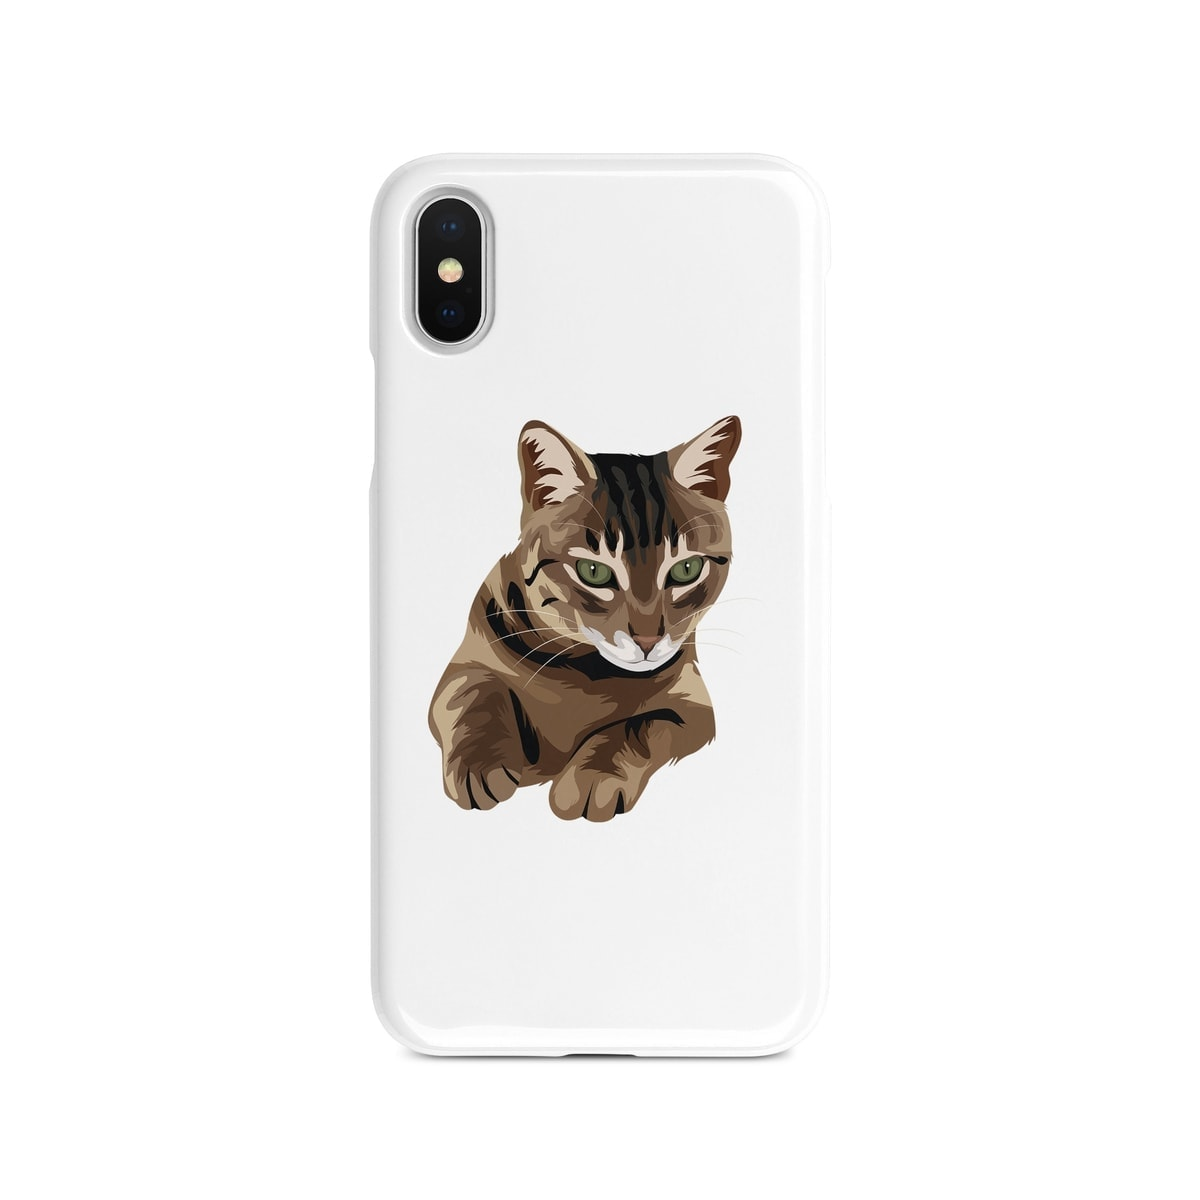 Custom Cat Illustration Portrait Phone Case Personalised Portrait Of Your Pet From A Photo For Your Iphone 6 S Plus 7 Plus 8 Plus X Xs Xr Max